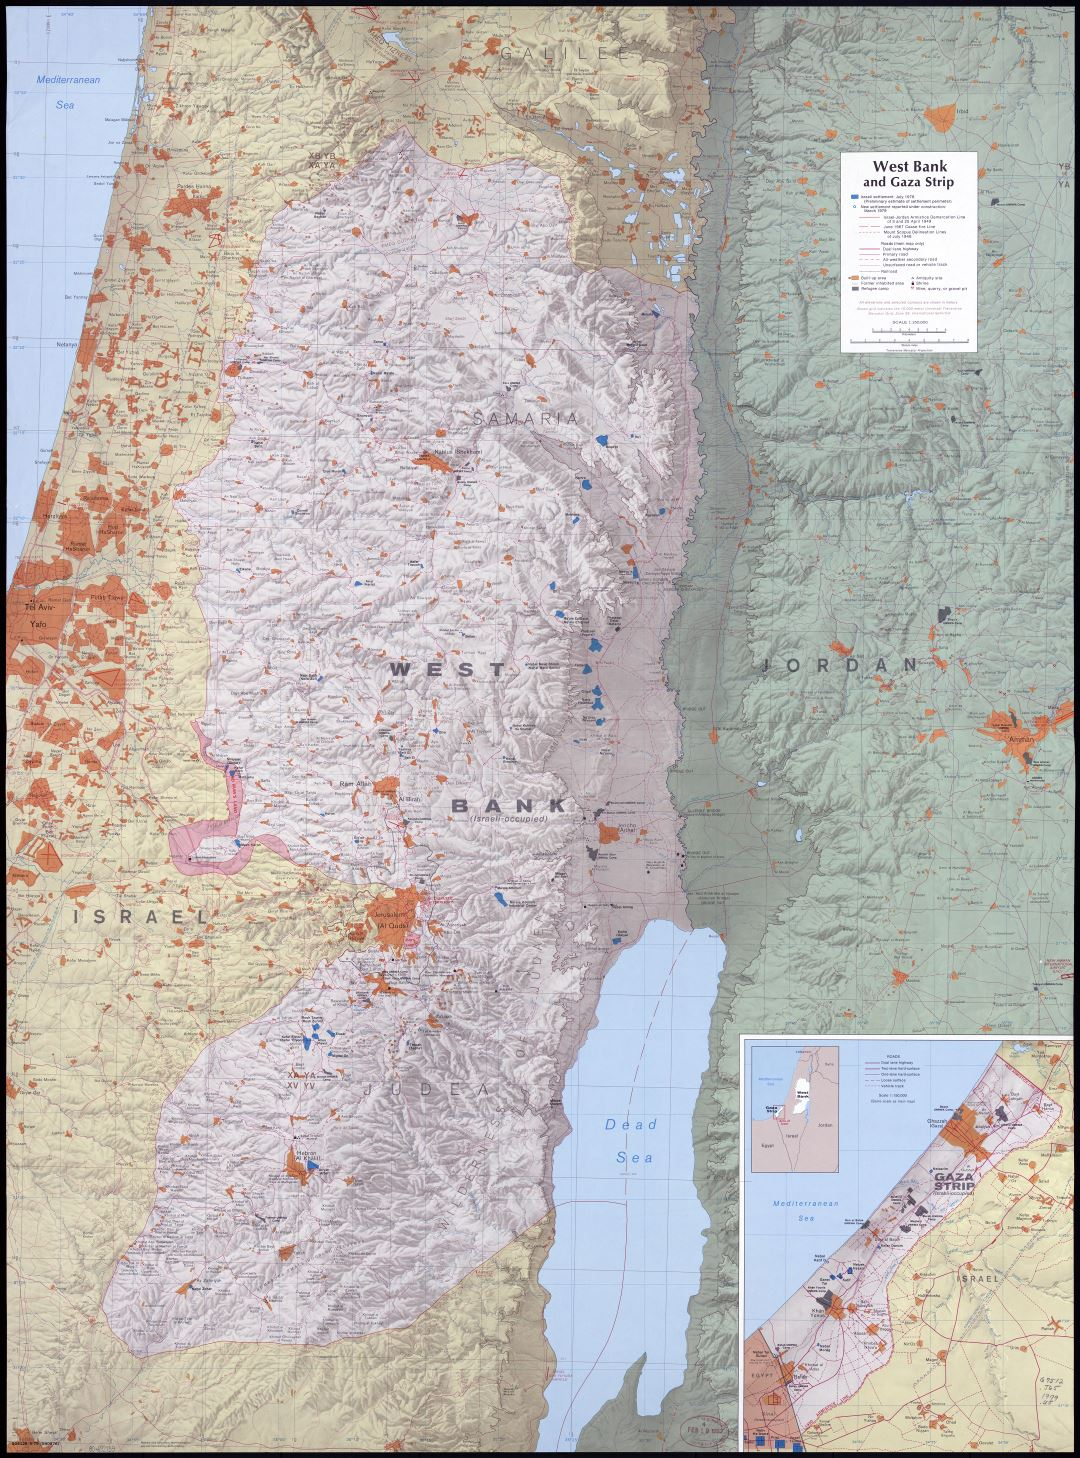 Large scale detailed map of West Bank and Gaza Strip with relief, roads, cities and other marks